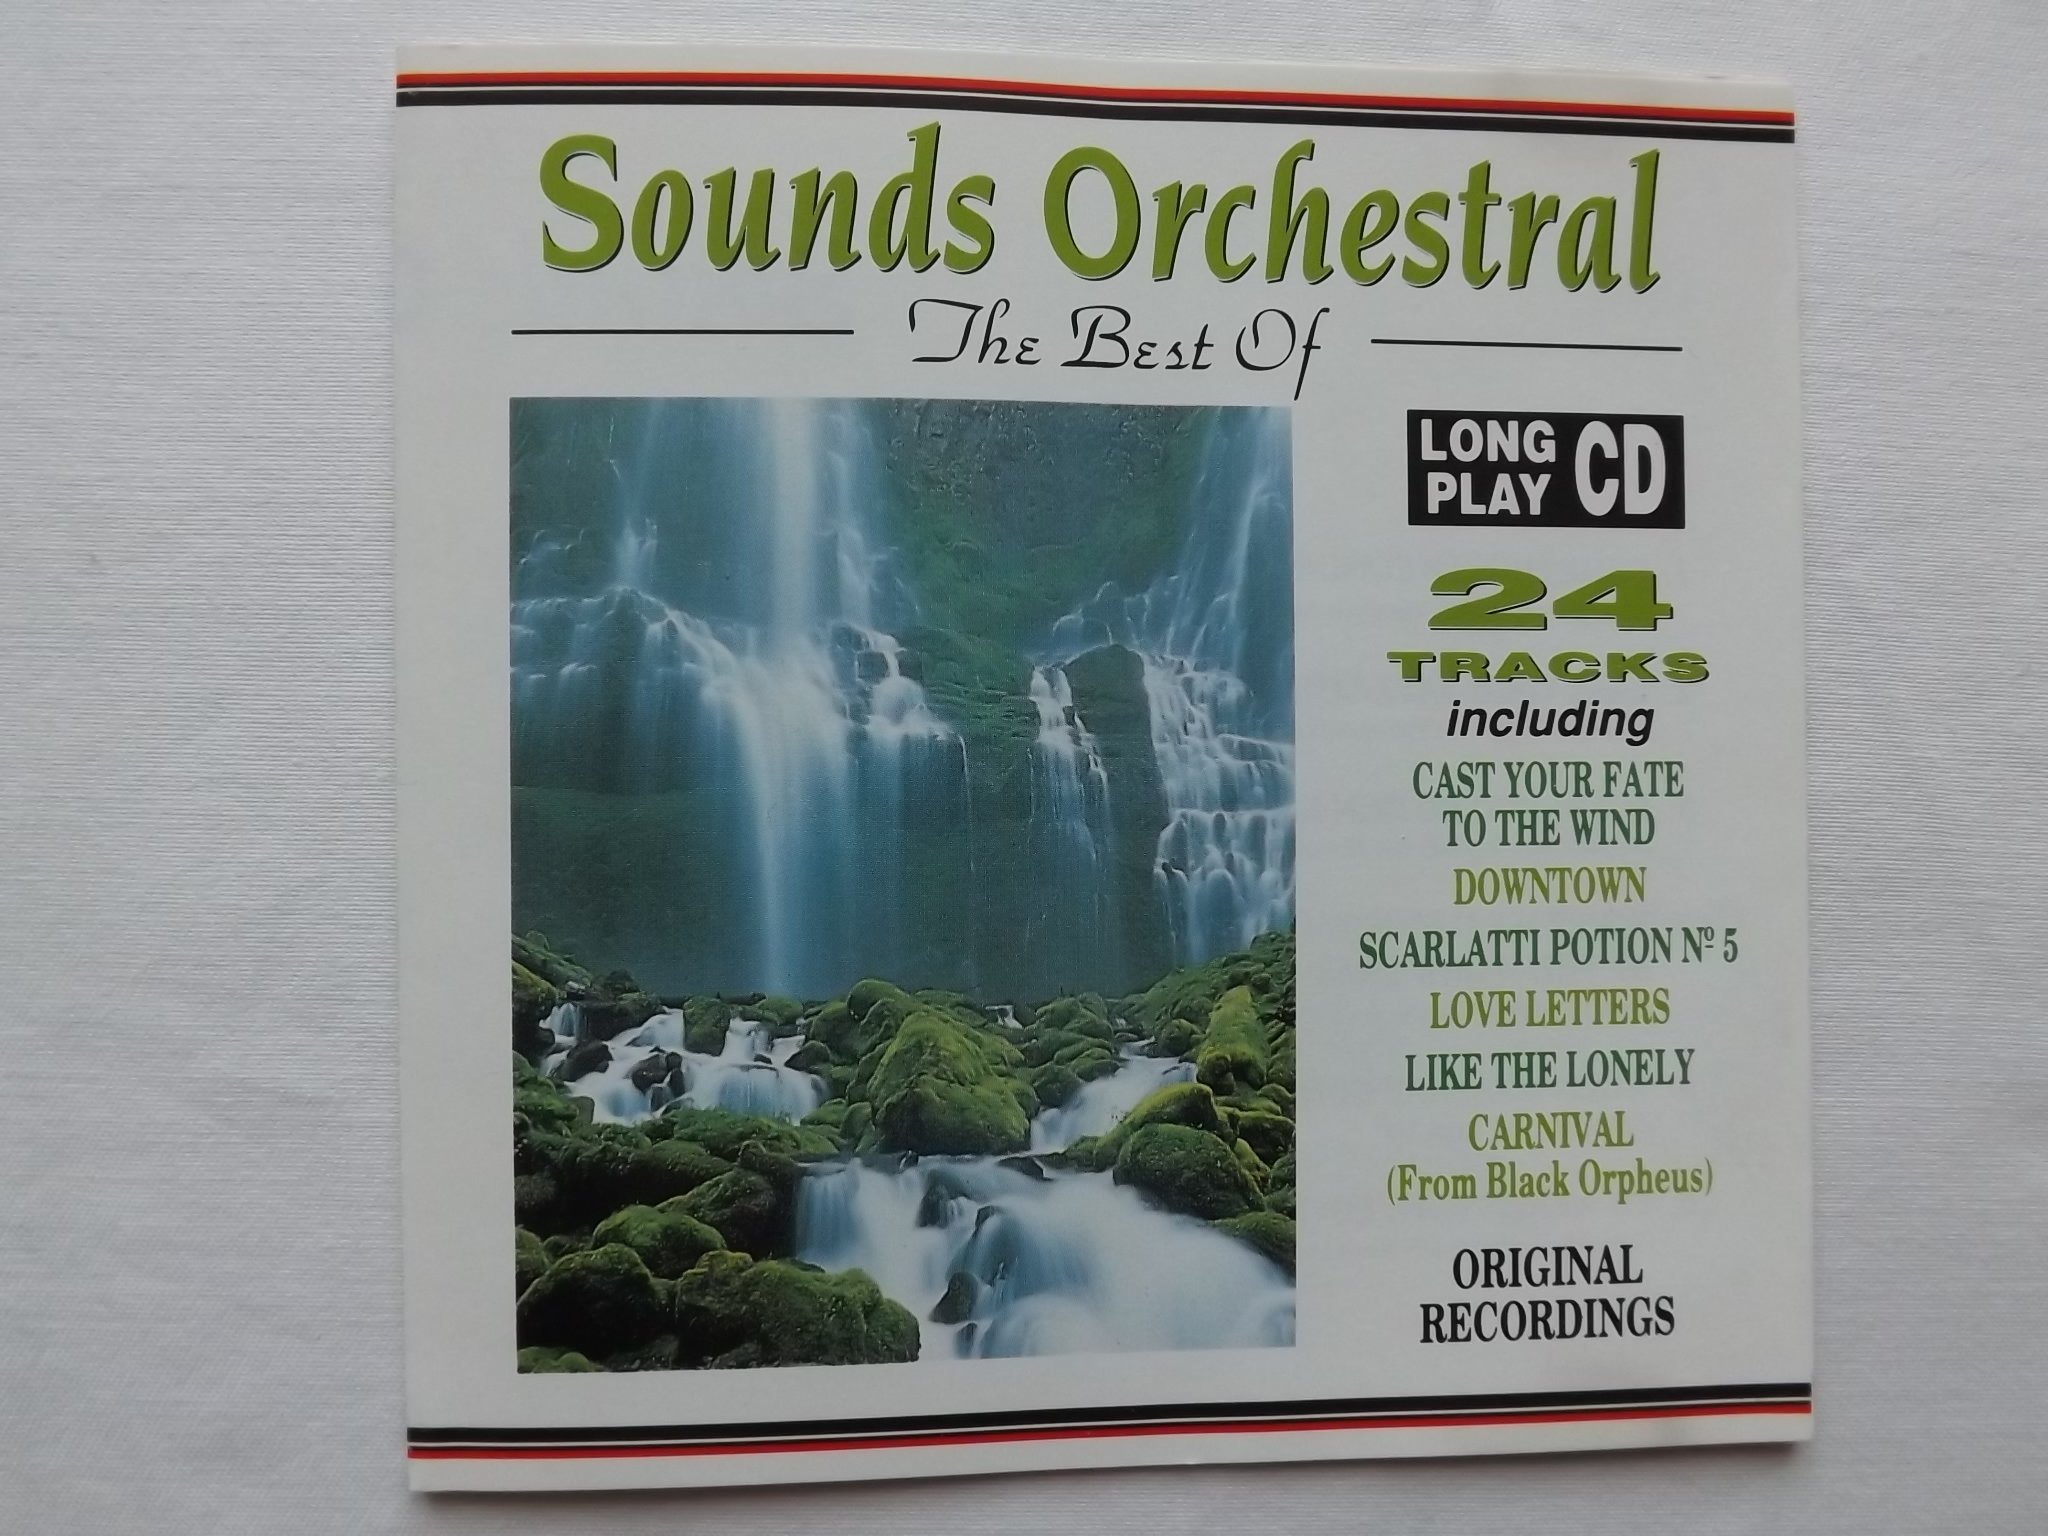 Sounds Orchestral by